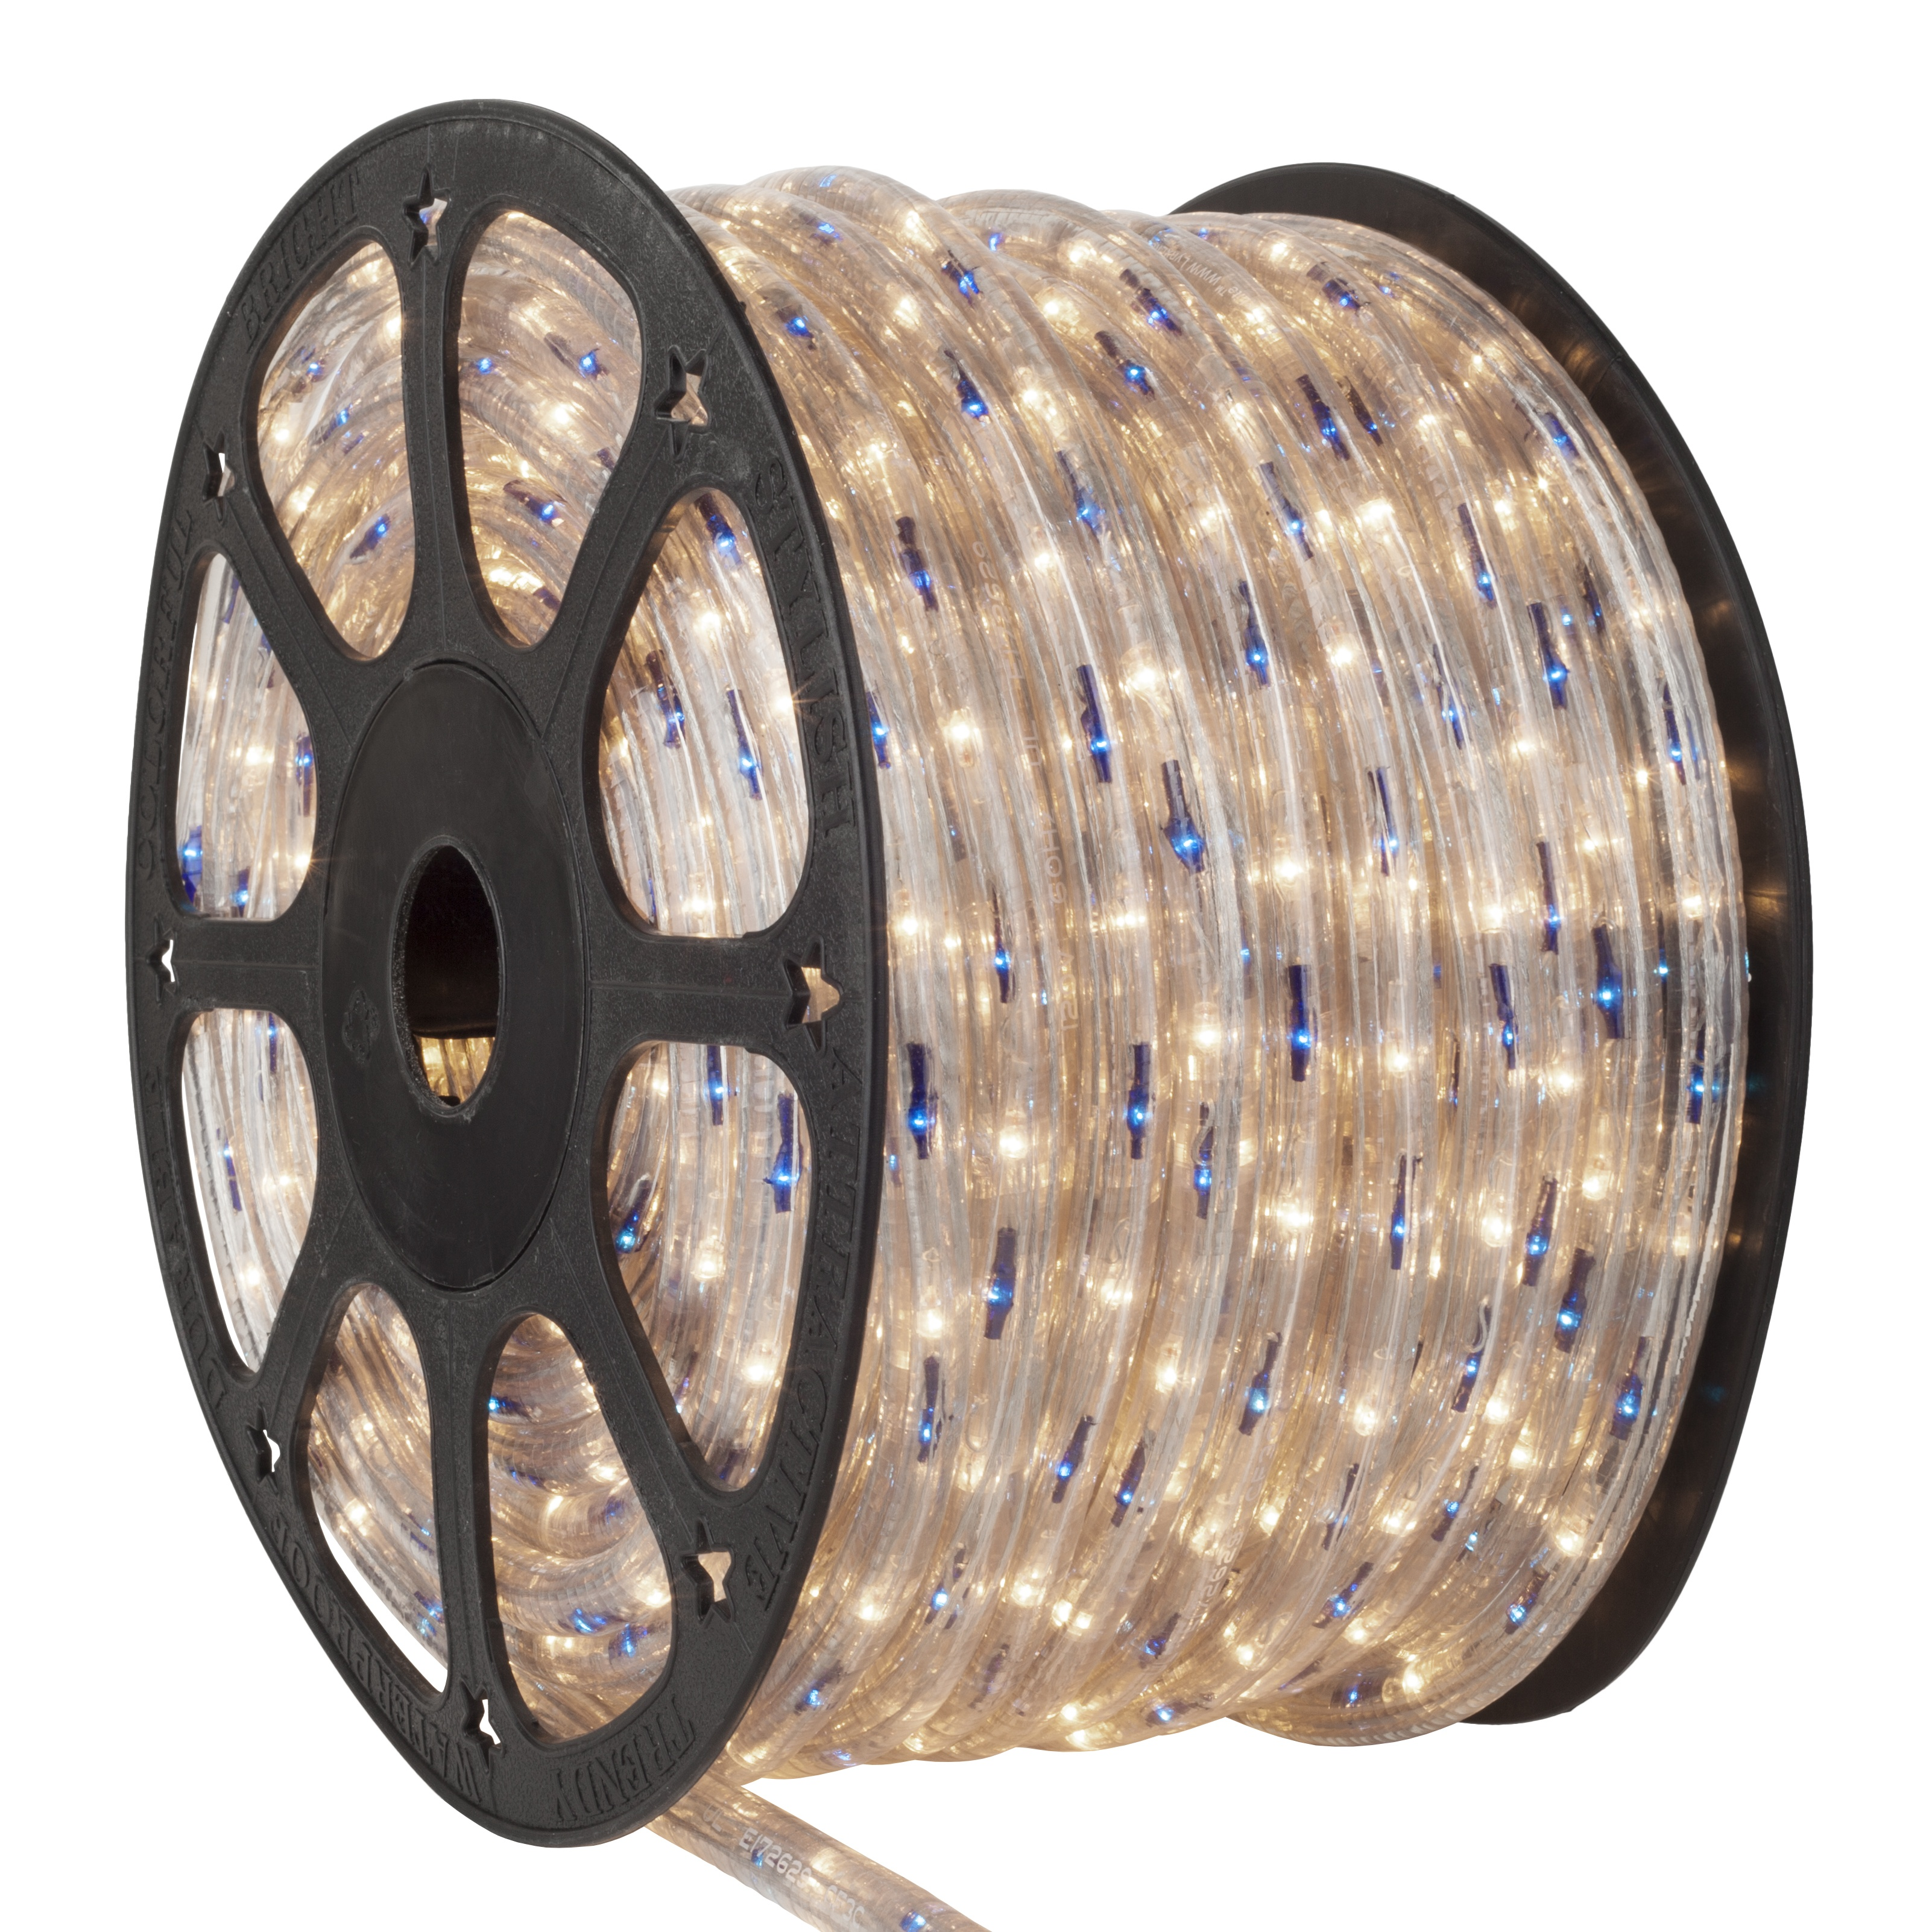 Blue Clear Rope Light Spool